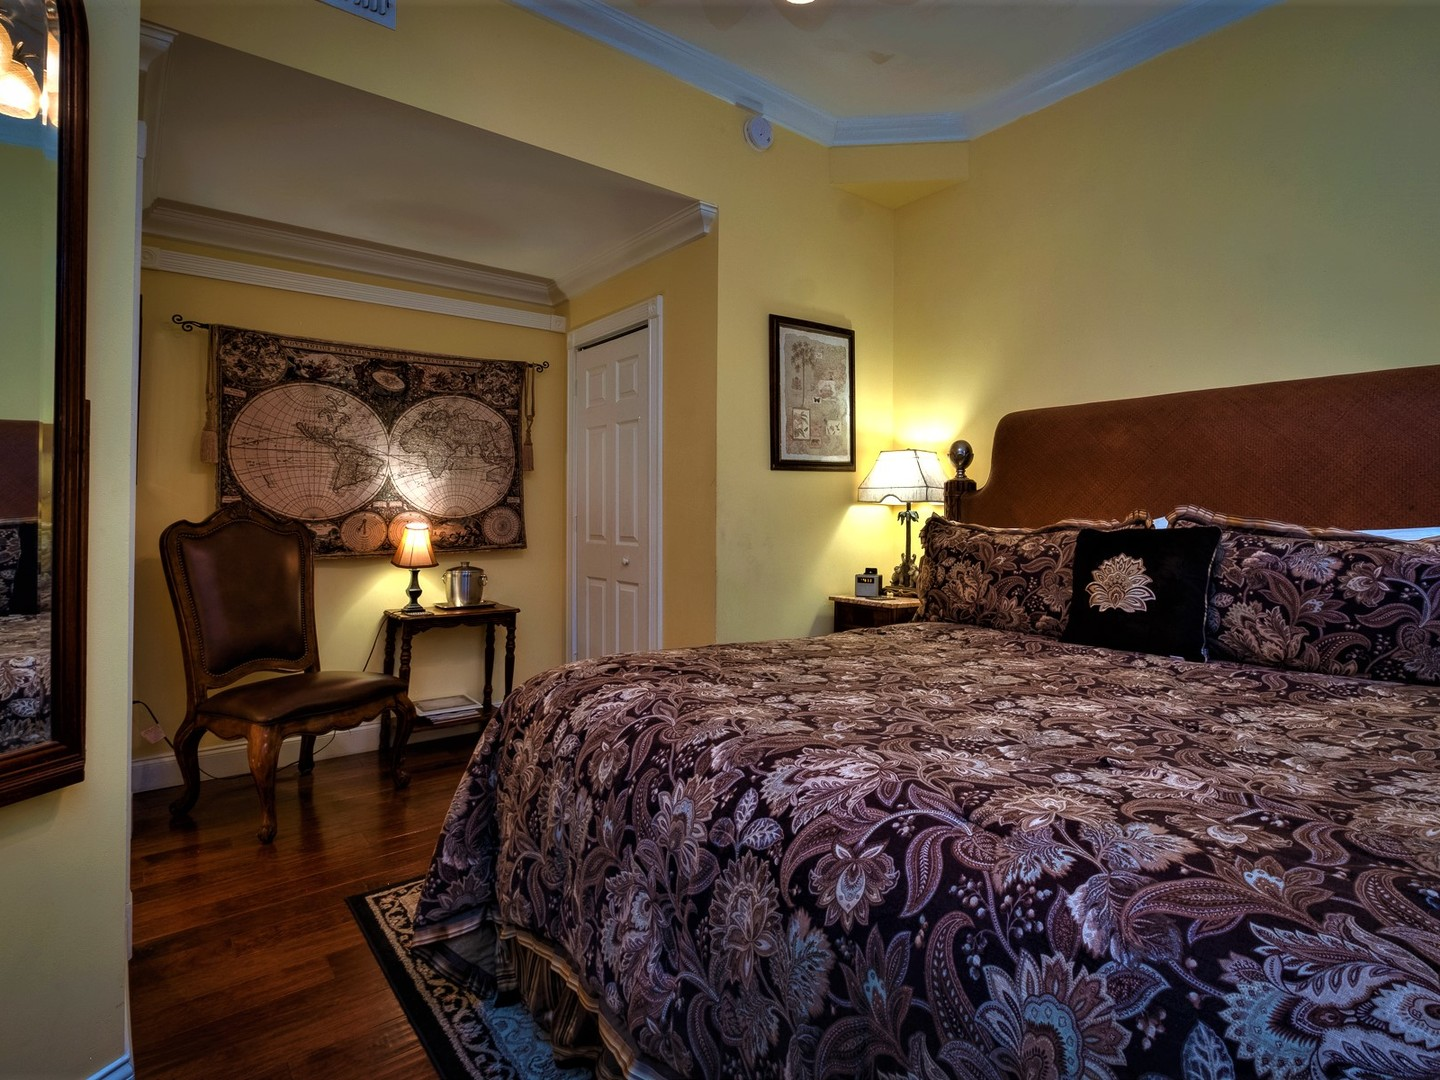 A bedroom with a large bed in a room at Victorian House B&B.